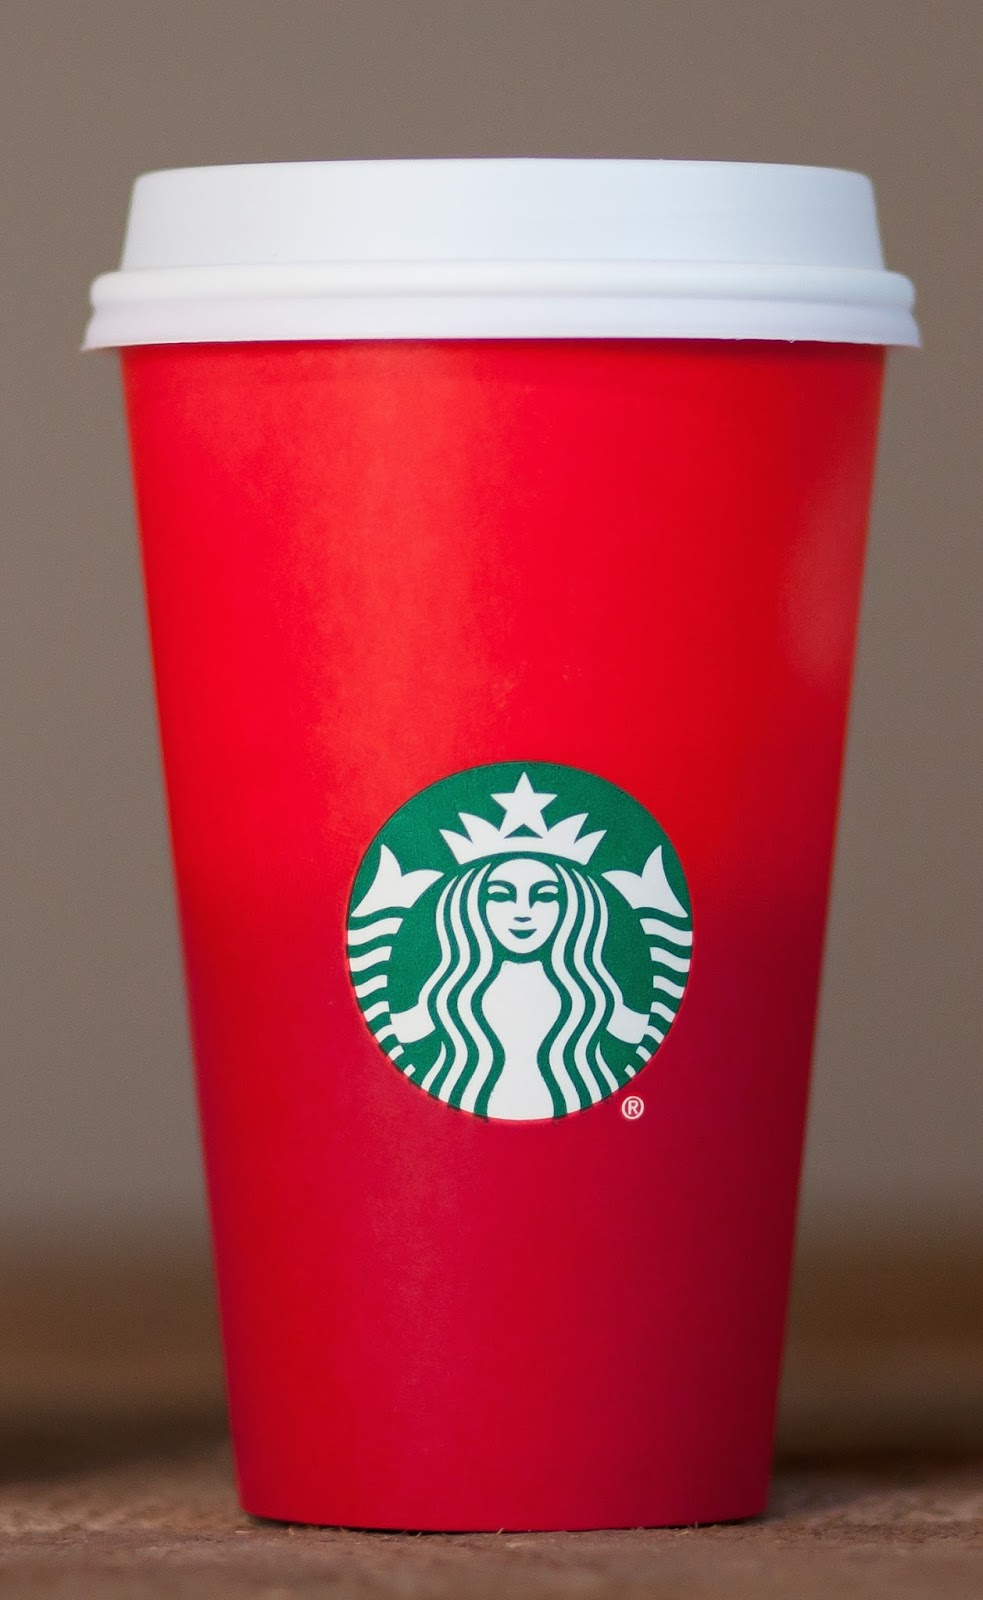 theonechameleon: some better holiday starbucks designs